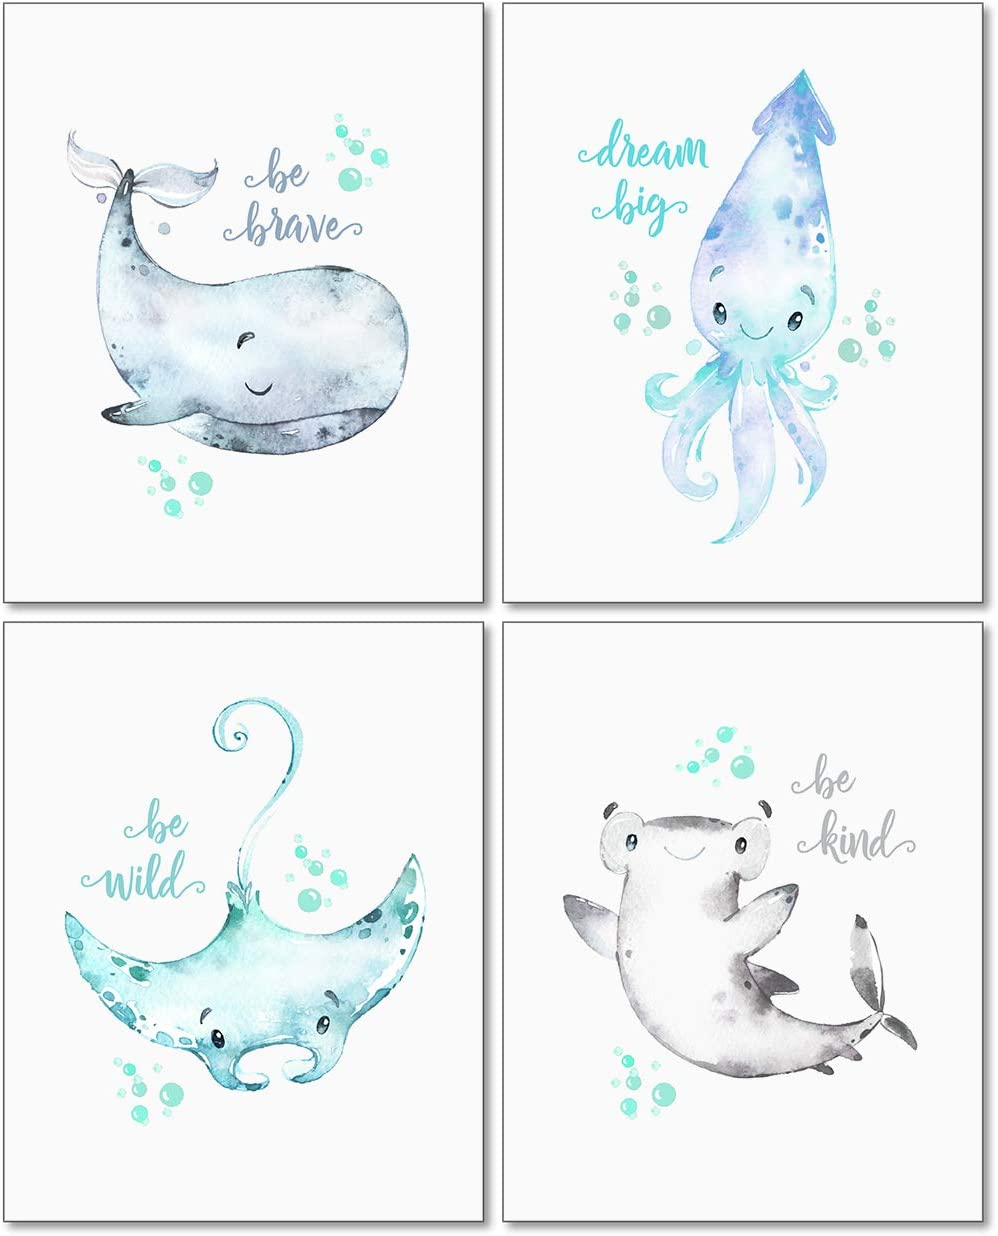 Confetti Fox Sea Nursery Pictures Wall Art Decor - 8x10 Unframed Set of 4 Prints - Kids Ocean Life Baby Animals - Whale Octopus Stingray Shark